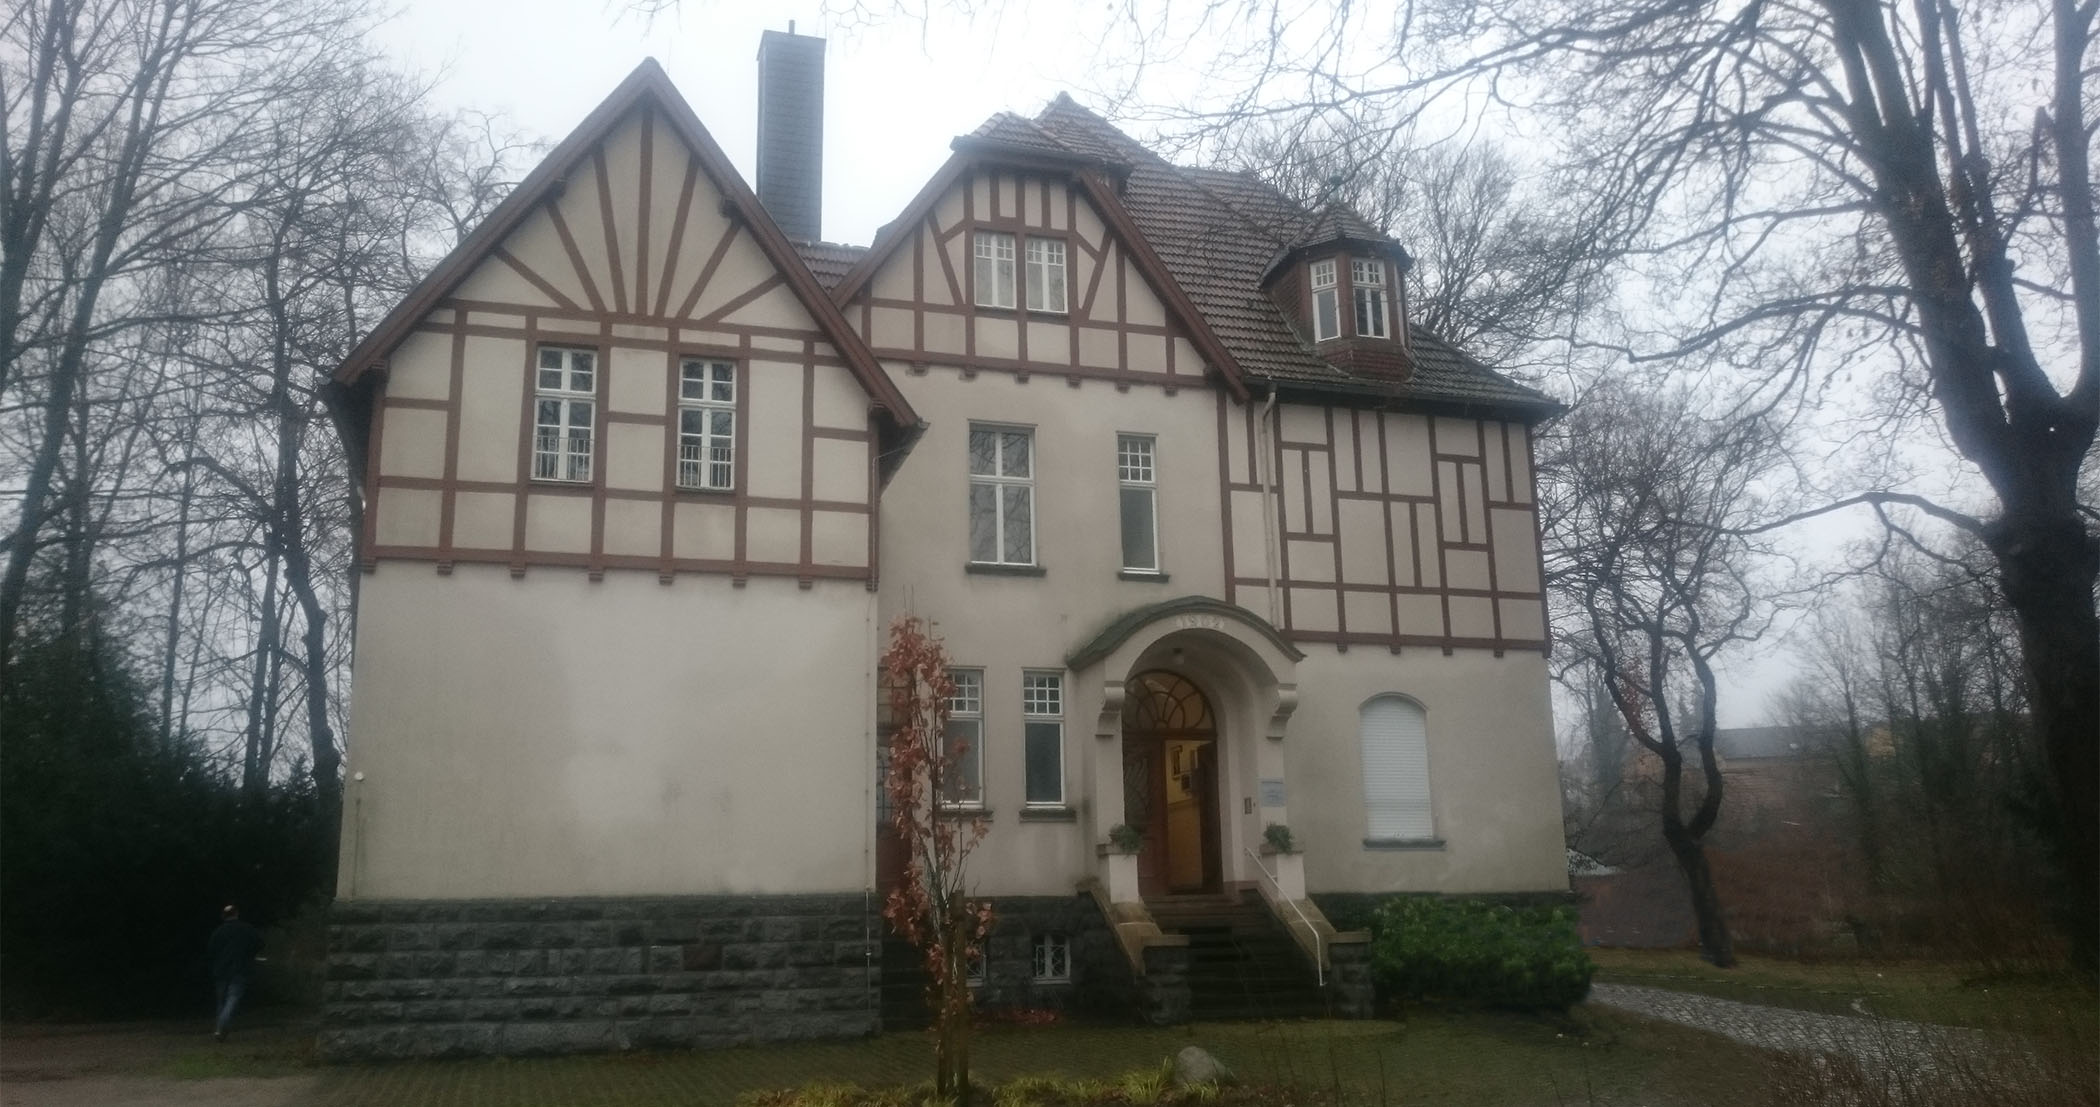 haus ohne laterne